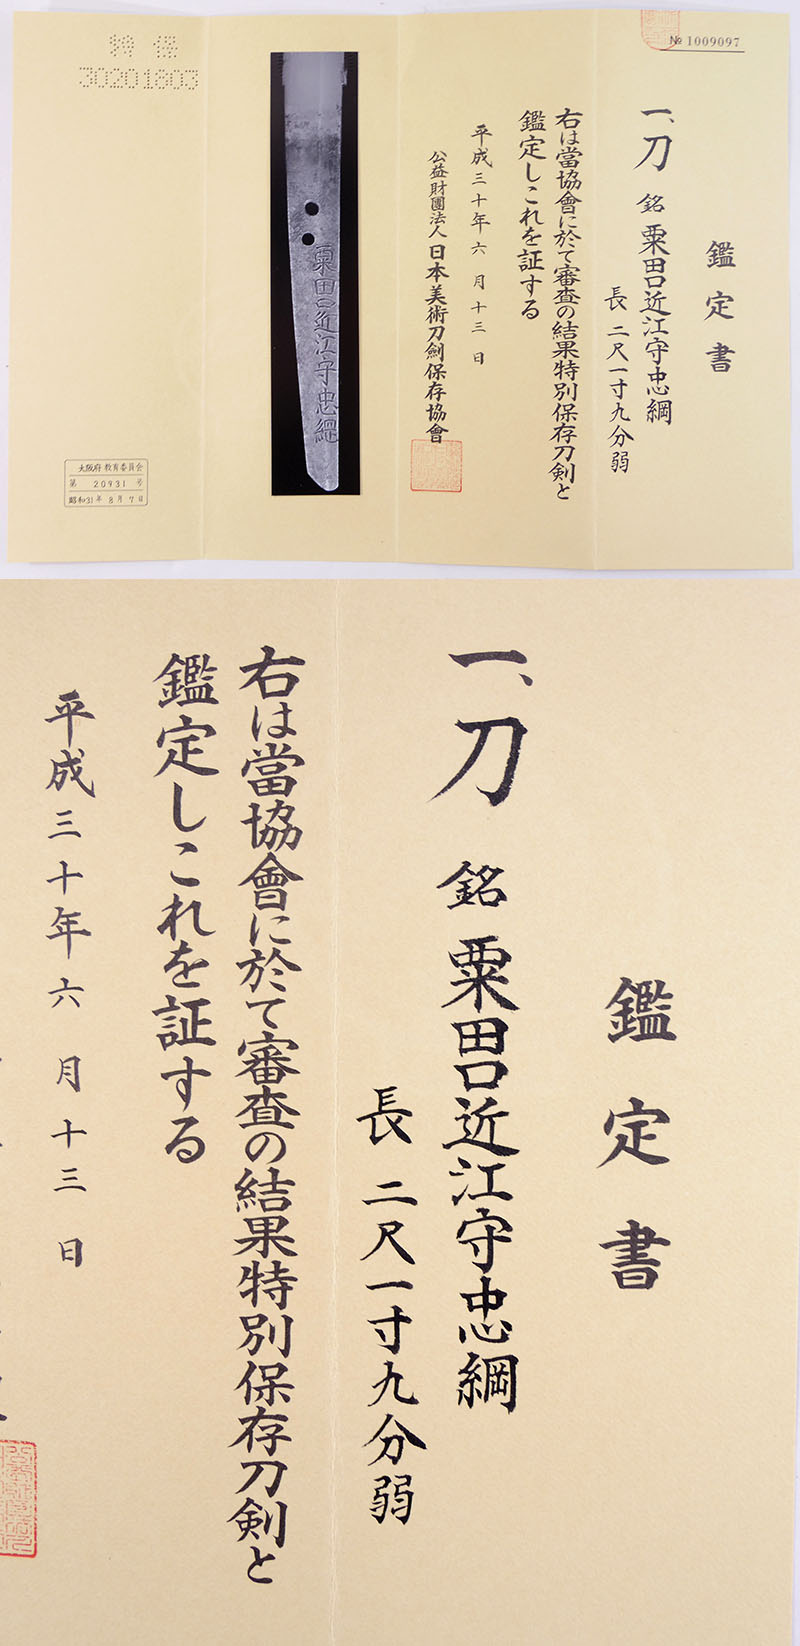 粟田口近江守忠綱 Picture of Certificate